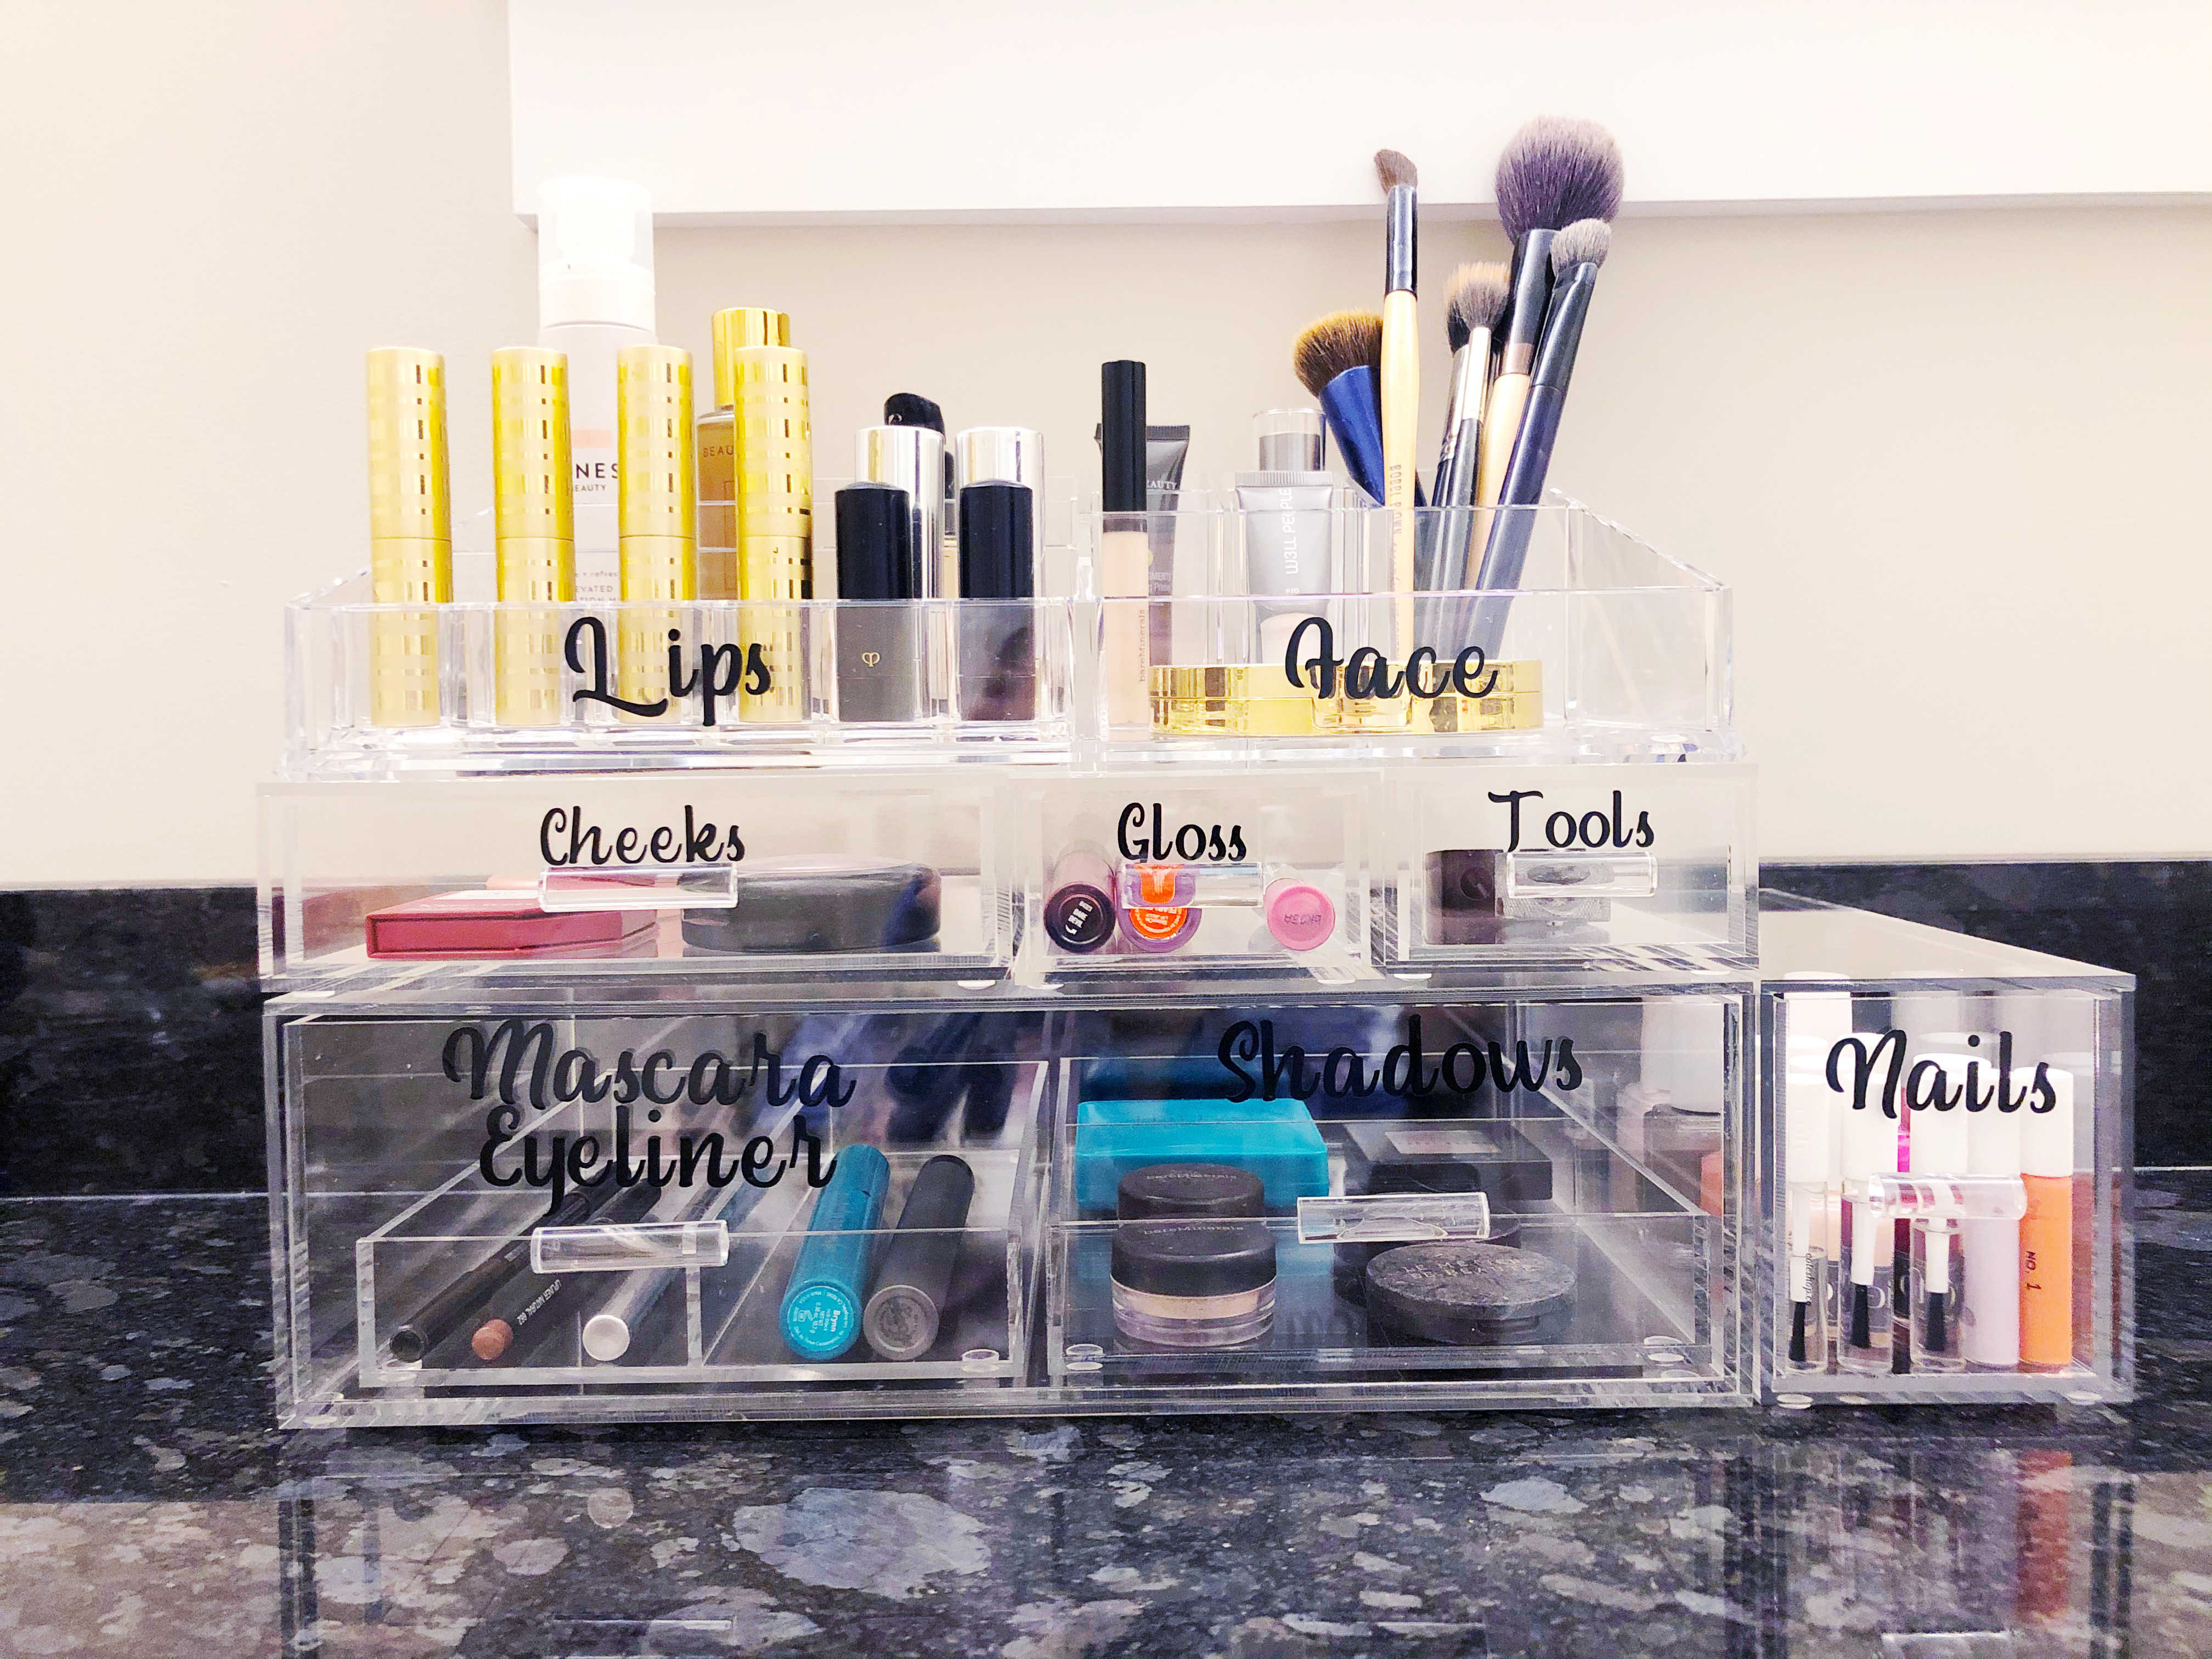 Makeup organizer from the Container Store, used here to organize someone's entire makeup collection.